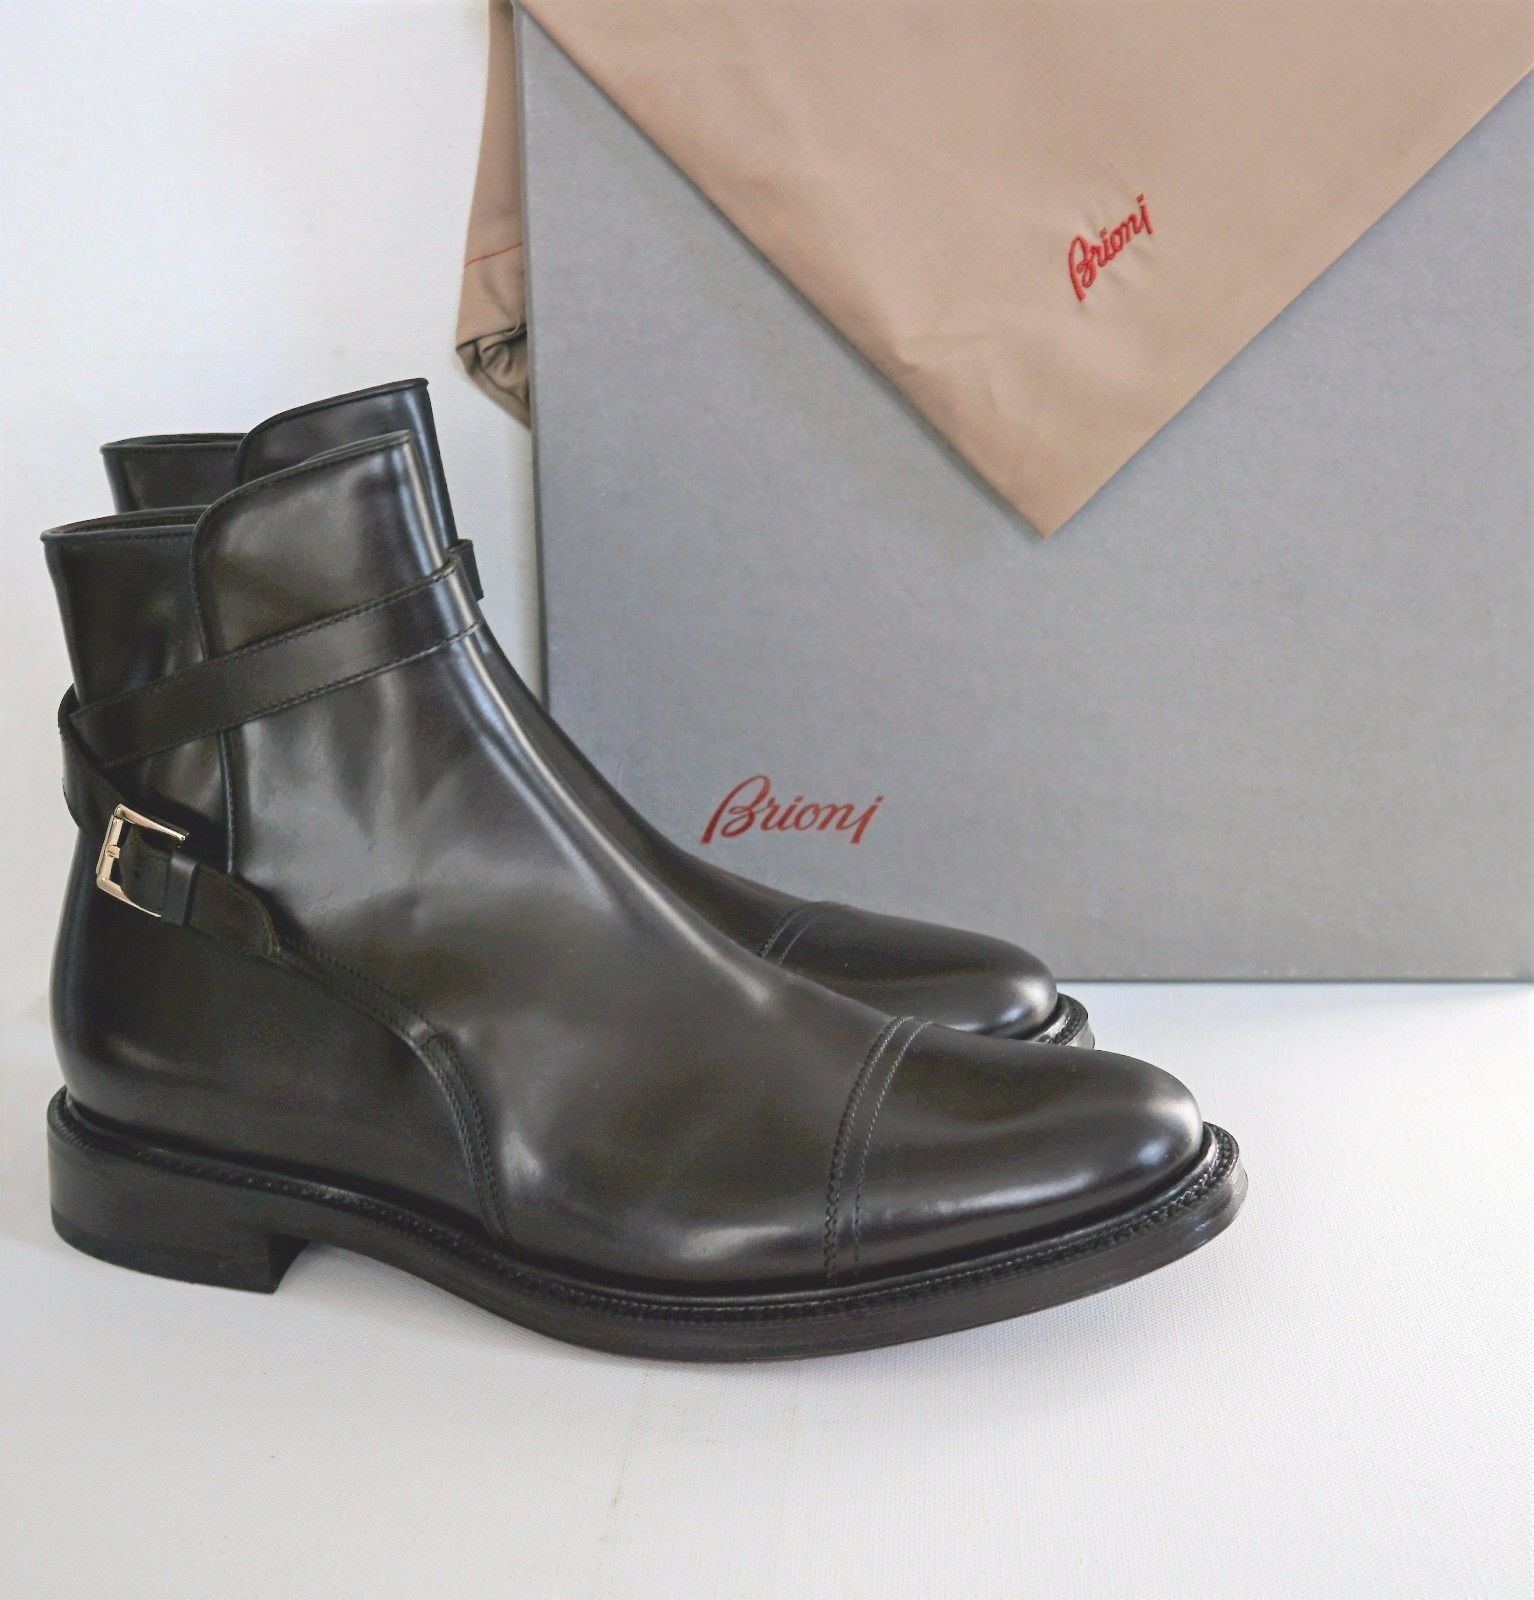 NIB Authentic BRIONI Brown Leather Buckle Monk Strap ANKLE ANKLE ANKLE BOOTS shoes US-11 342f4d